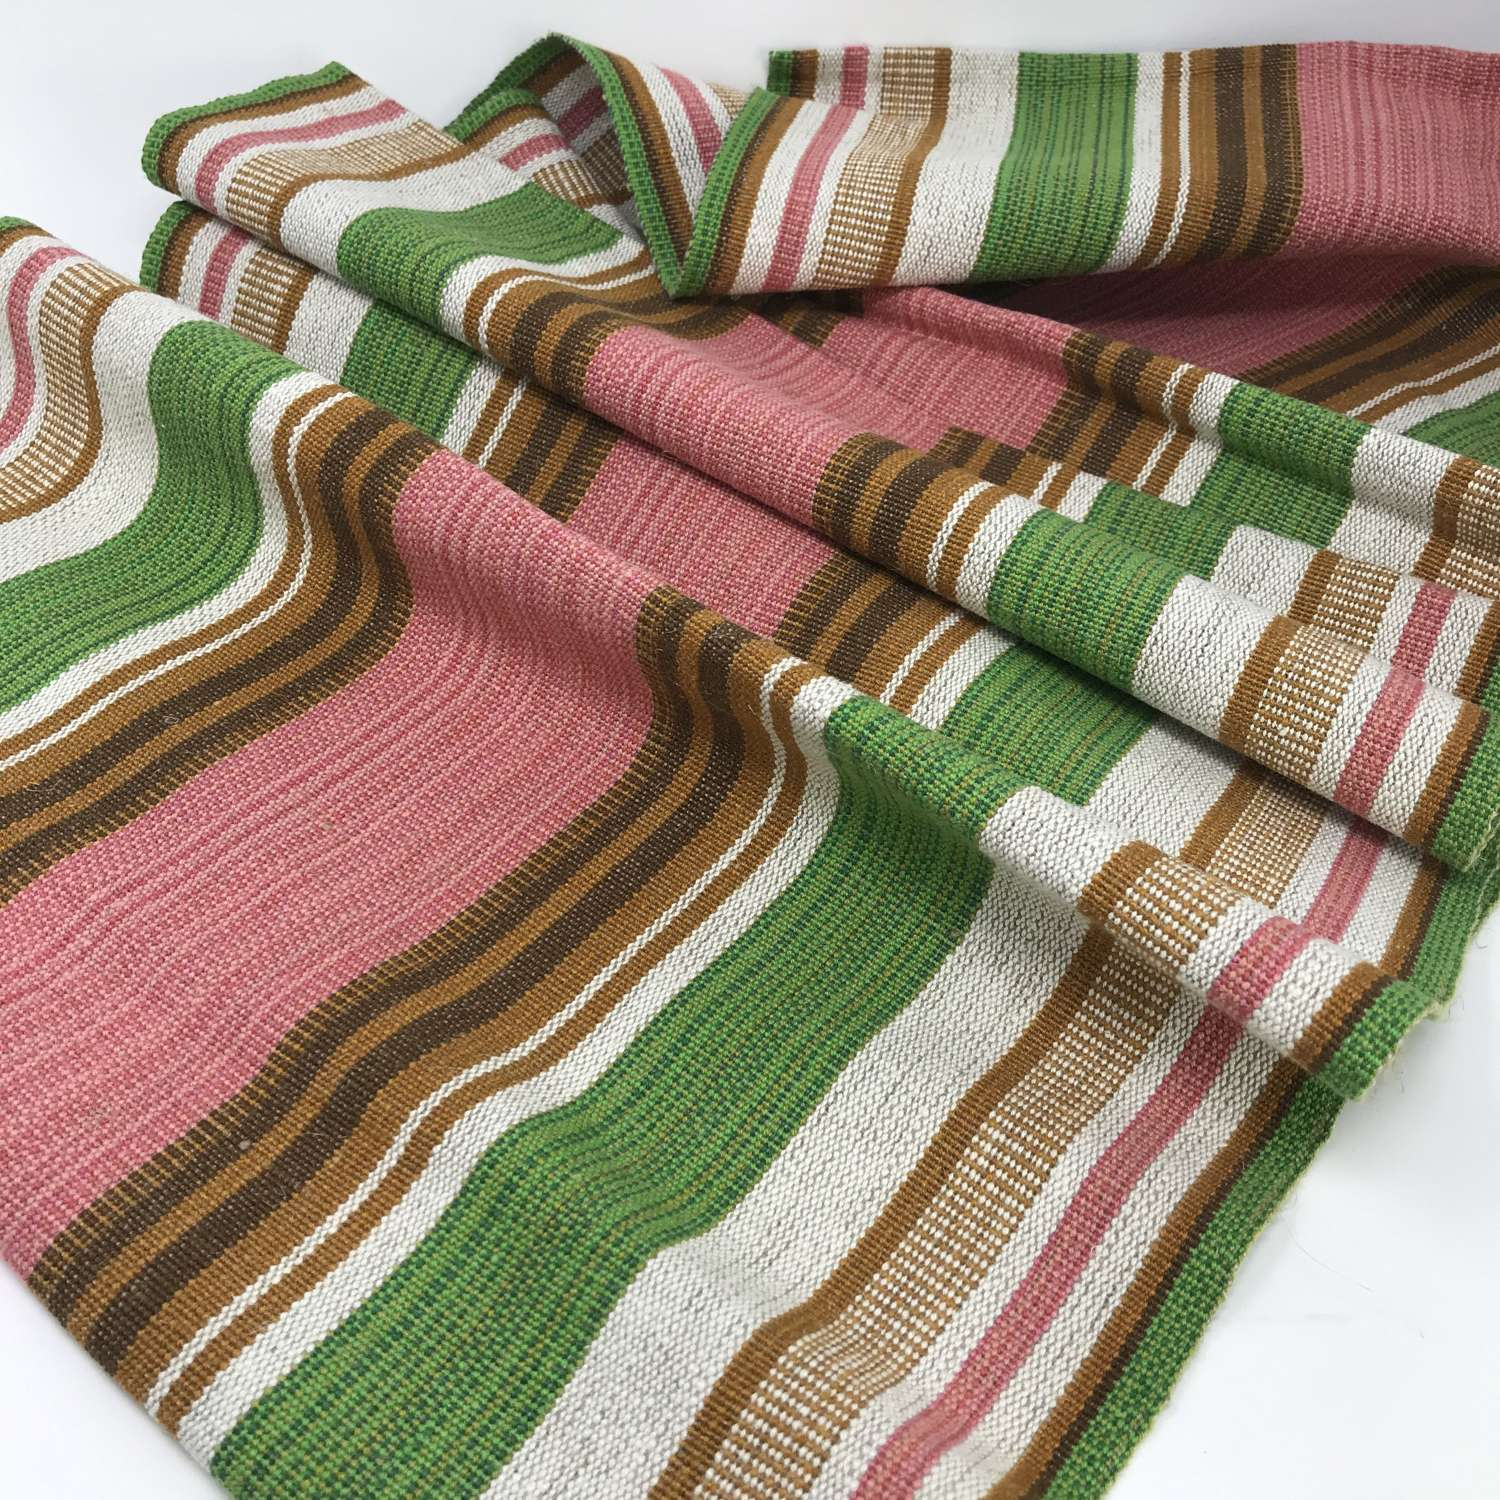 Swedish linen table runner with pink, green, brown stripes c1970s